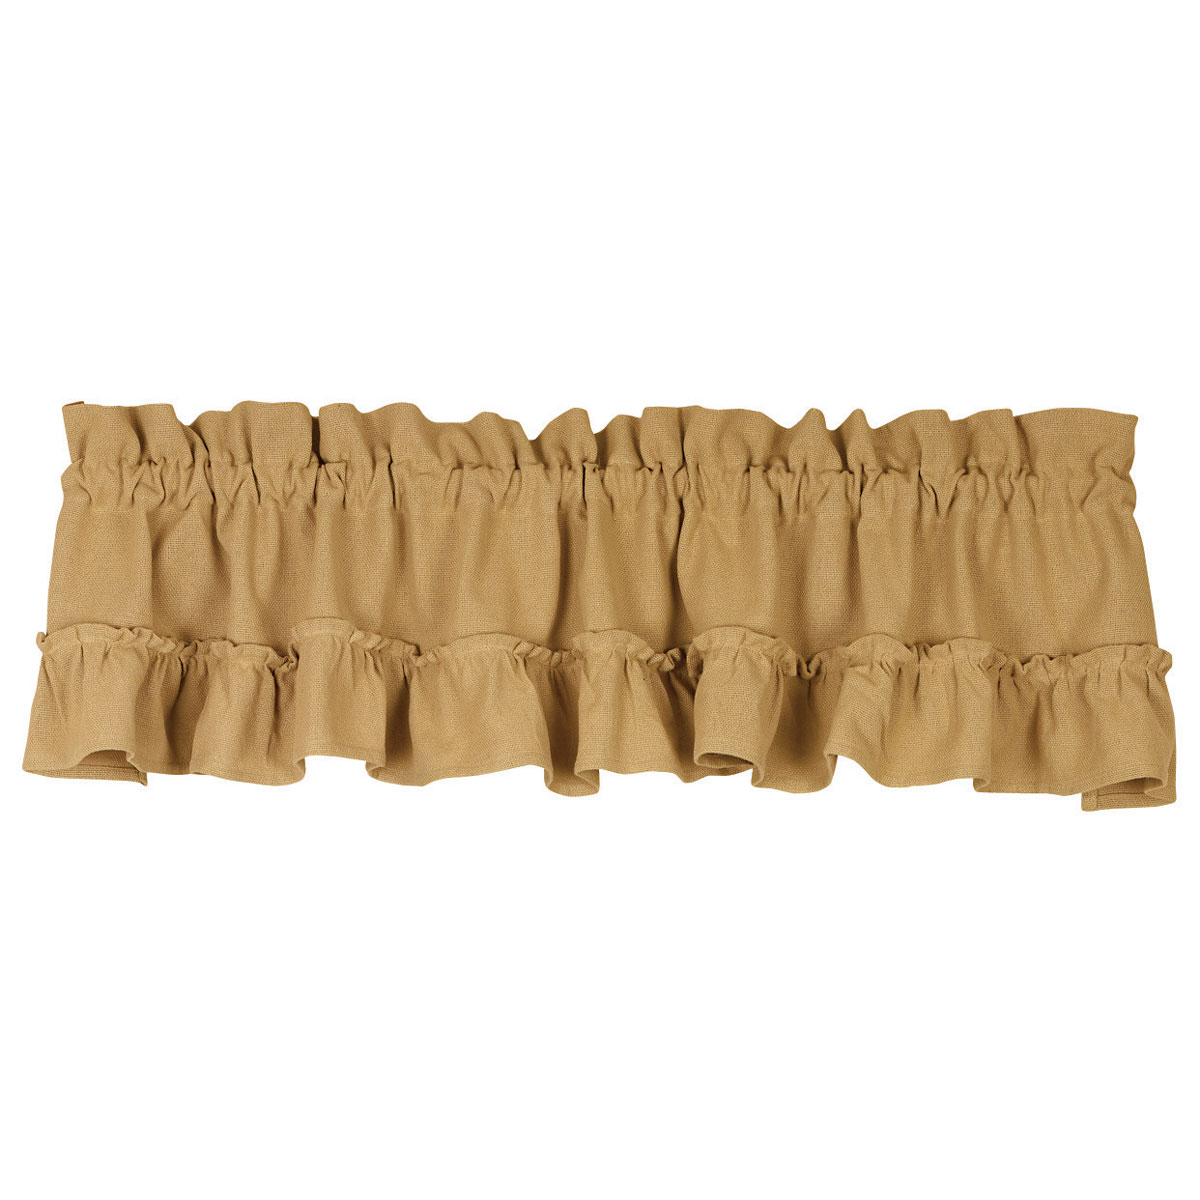 Ruffled Cotton Burlap French Country Valance